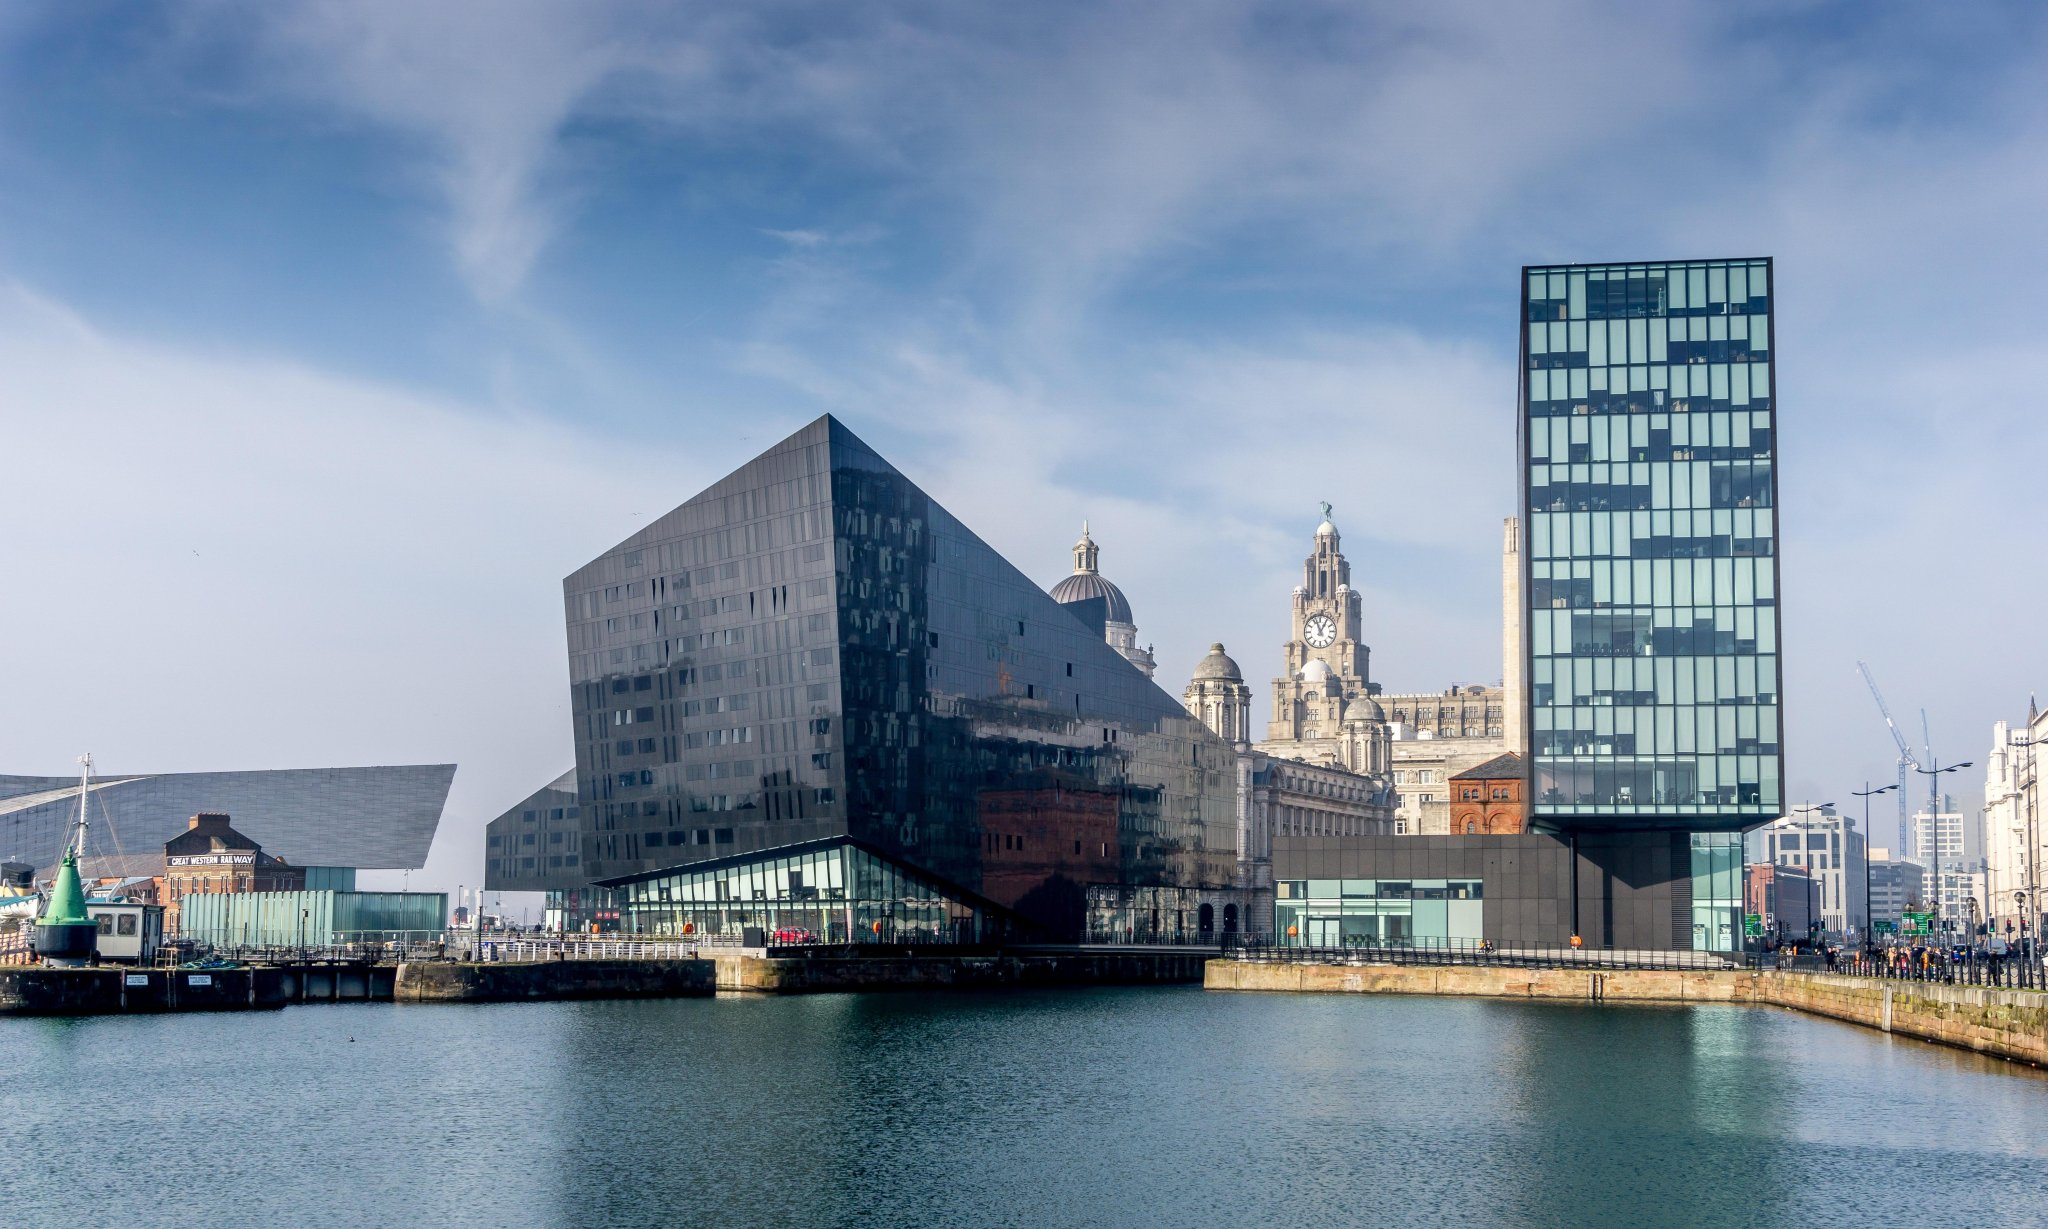 Liverpool has been vandalising its waterfront for a decade – it's shocking Unesco didn't act sooner